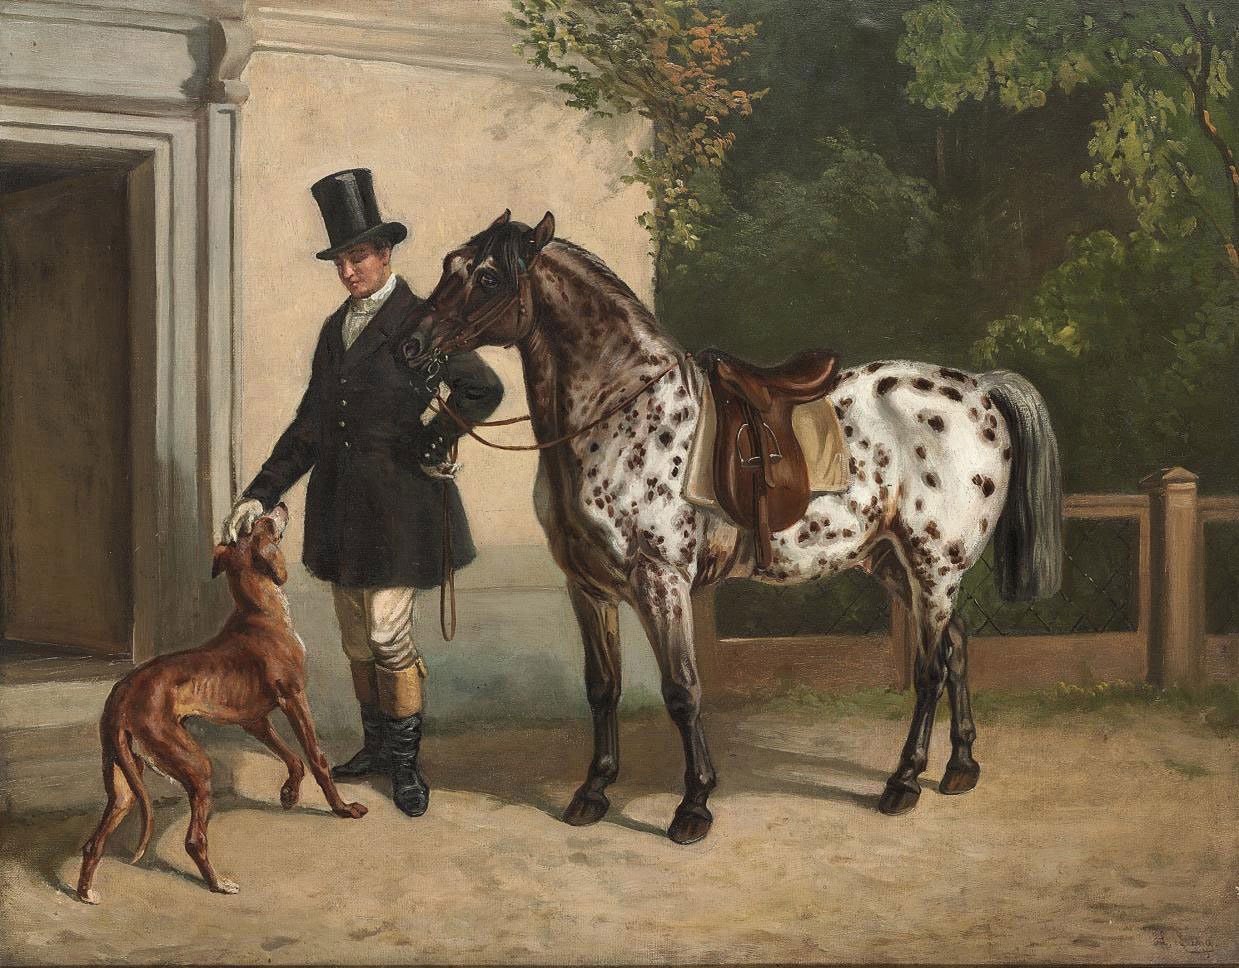 A huntsman with his dog and a piebald pony